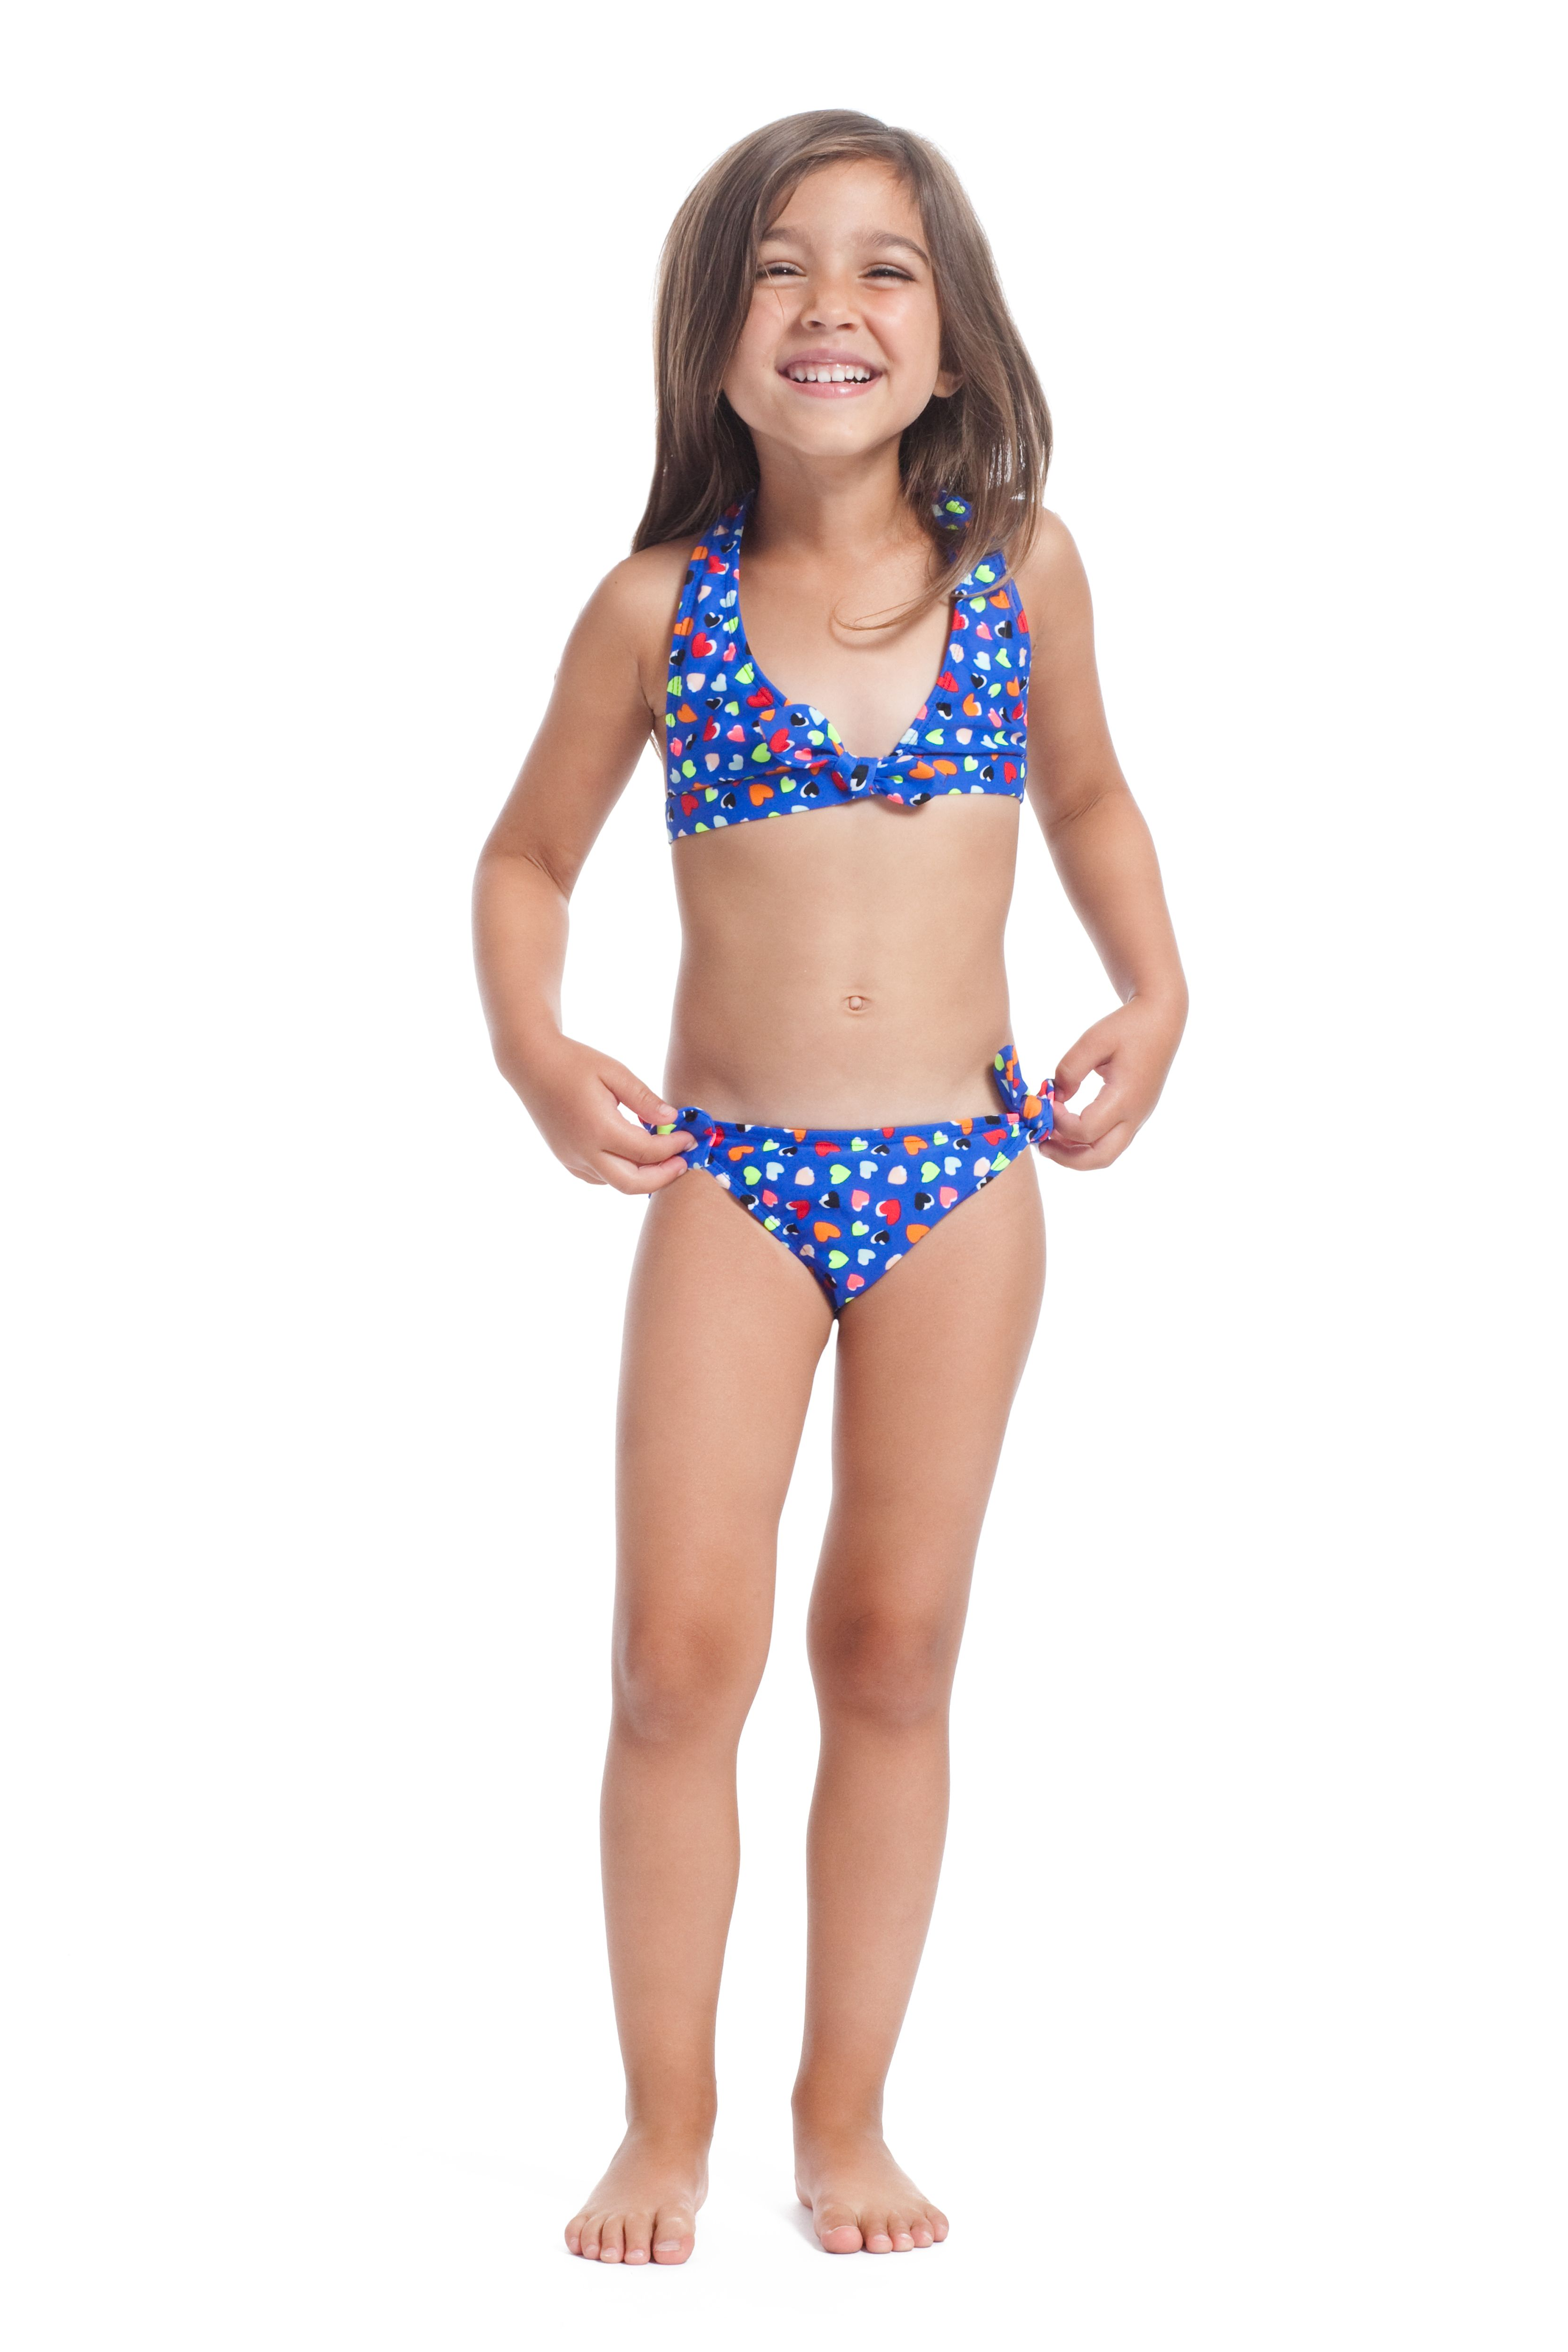 9d1f37e244 Neon Hearts Bow Bikini. Neon Hearts Bow Bikini Baby Swimwear, Bikini  Swimwear, Bikinis, Little Girl Swimsuits,